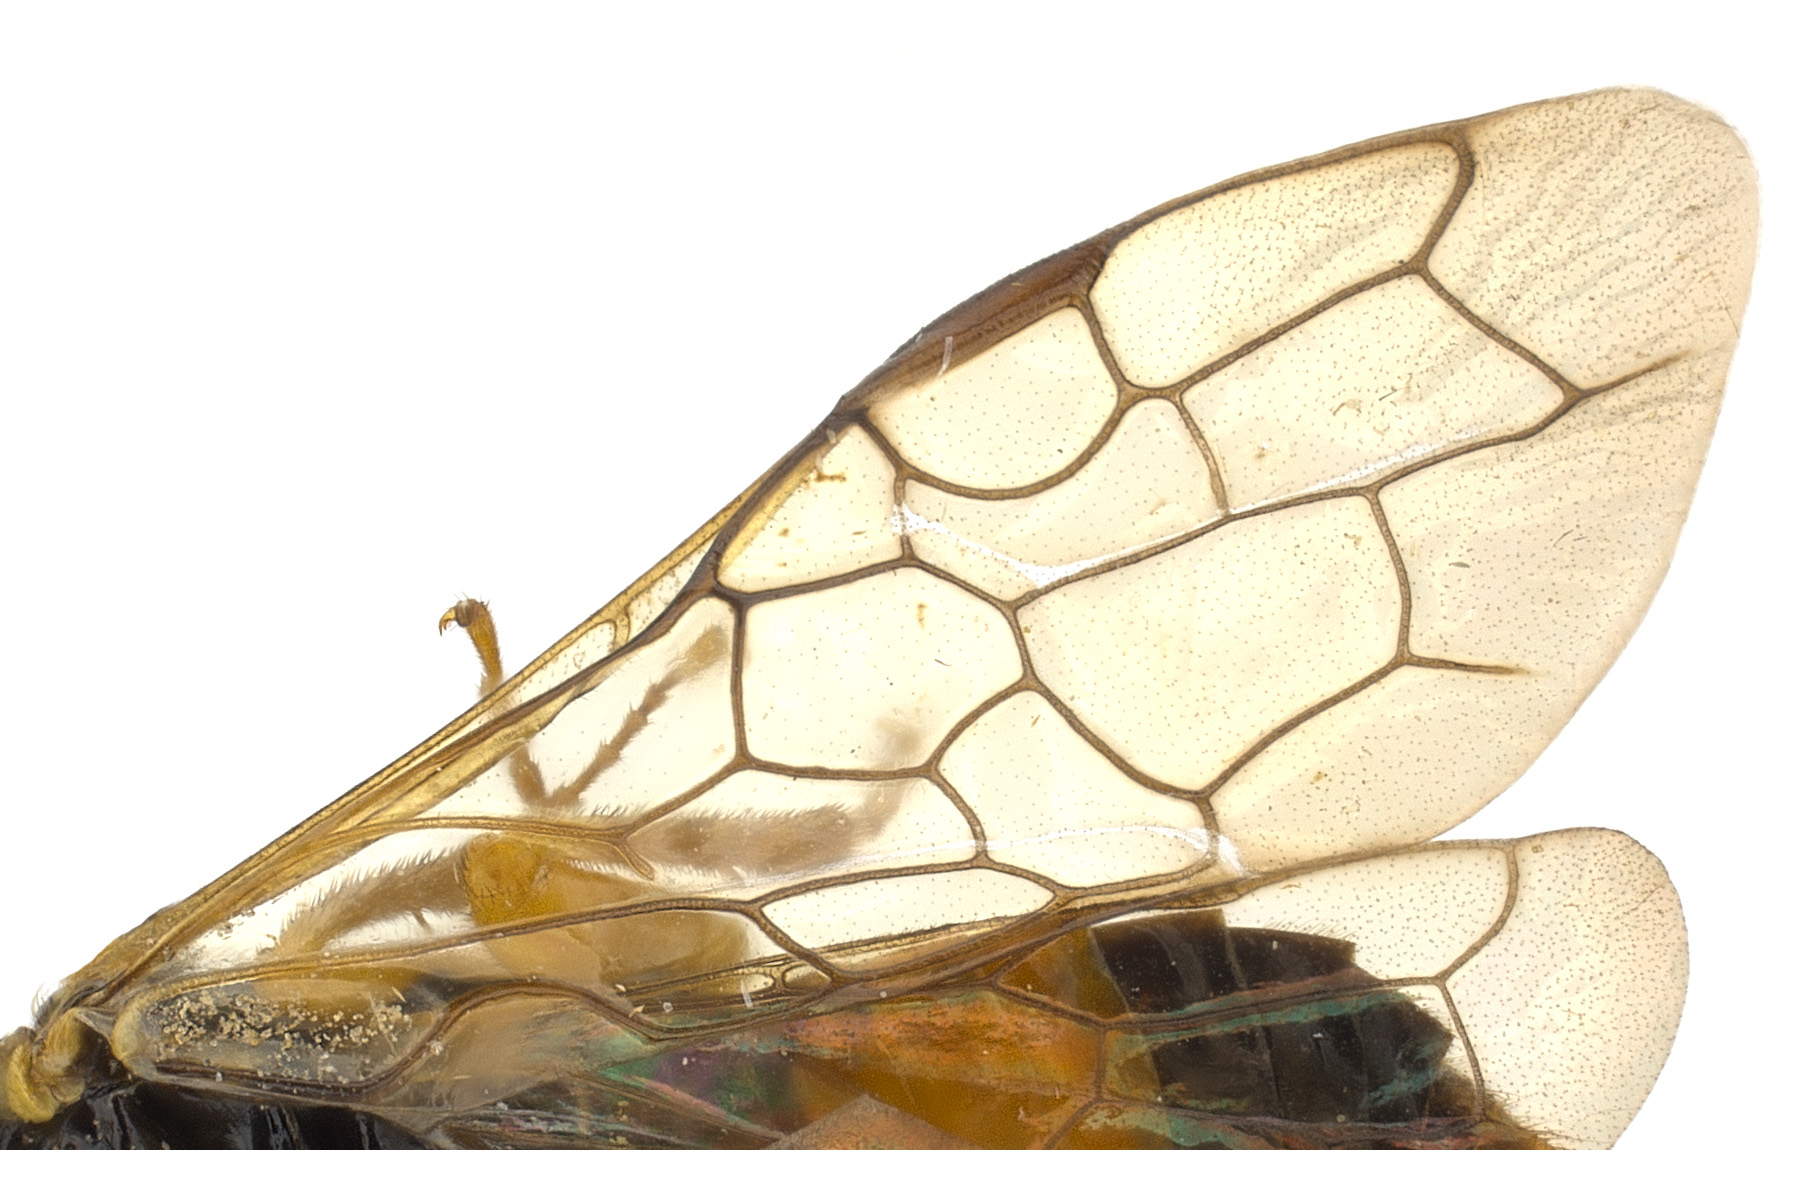 Pamphilius sp. fore wing; photo by J. Orr, WSDA